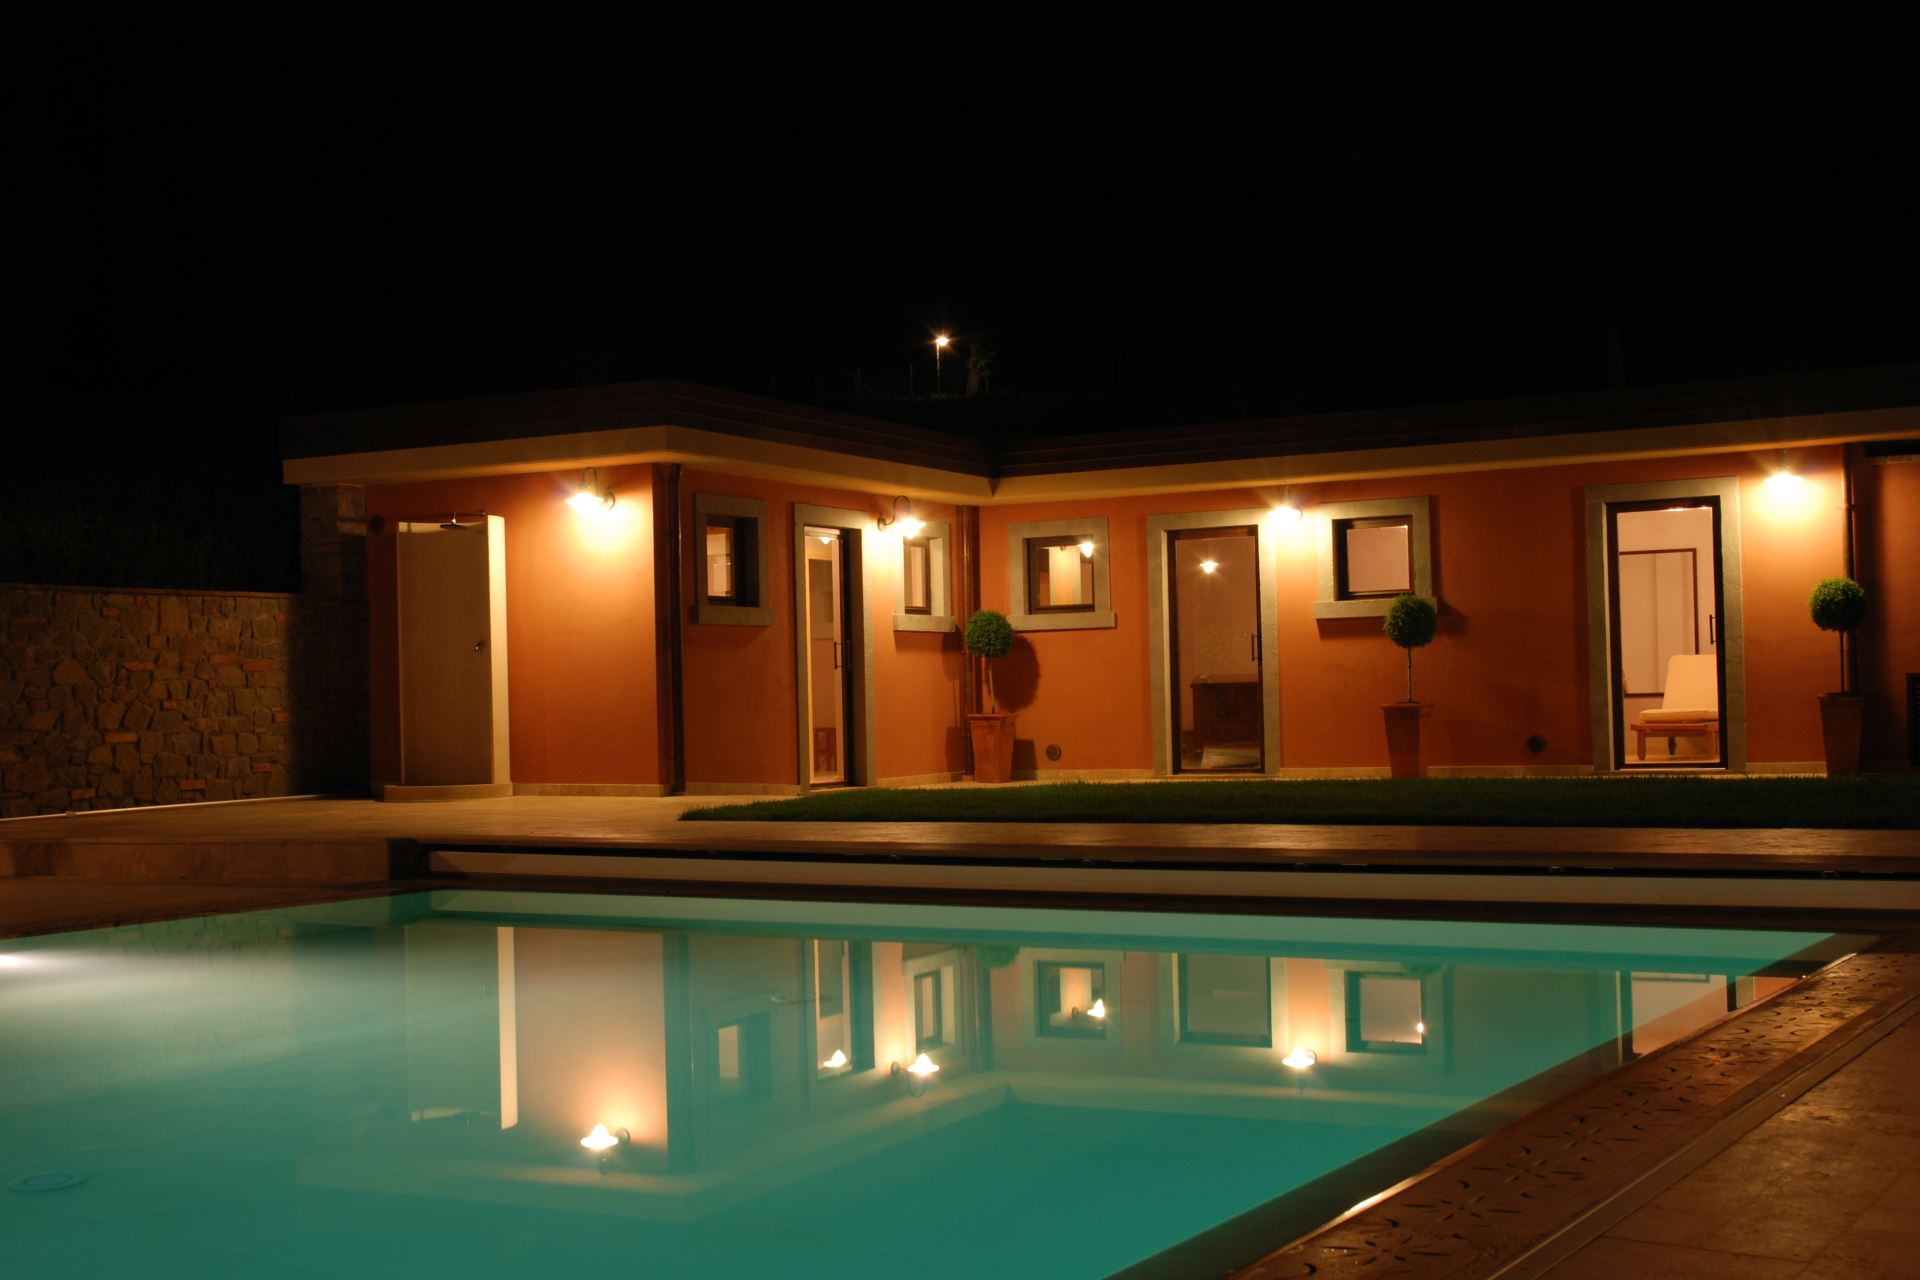 APPARTEMENTS AVEC PISCINE GALILEO GALILEI CIVITELLA IN VAL DI CHIANA TOSCANA